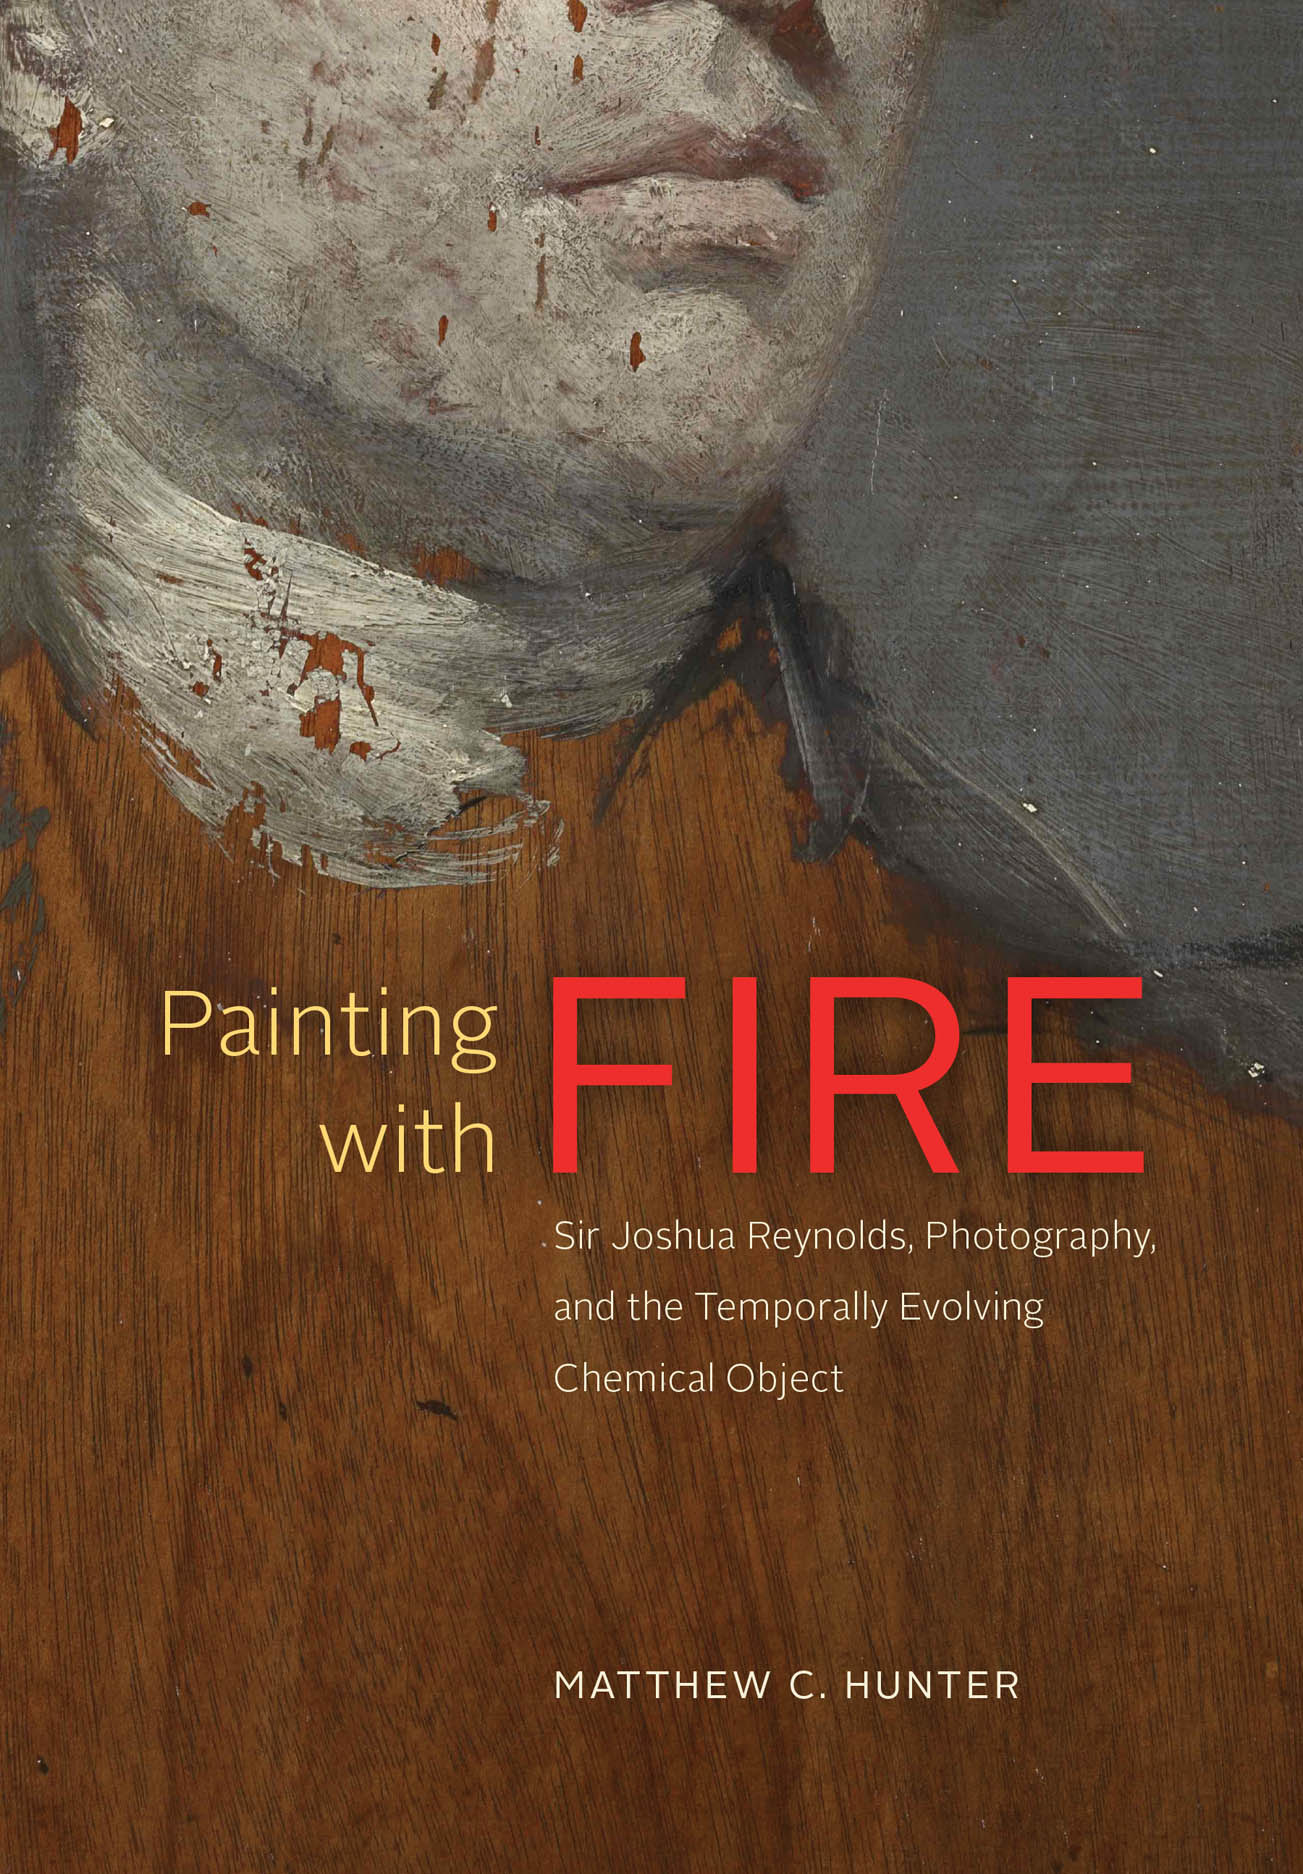 Painting with Fire: Sir Joshua Reynolds, Photography, and the Temporally Evolving Chemical Object